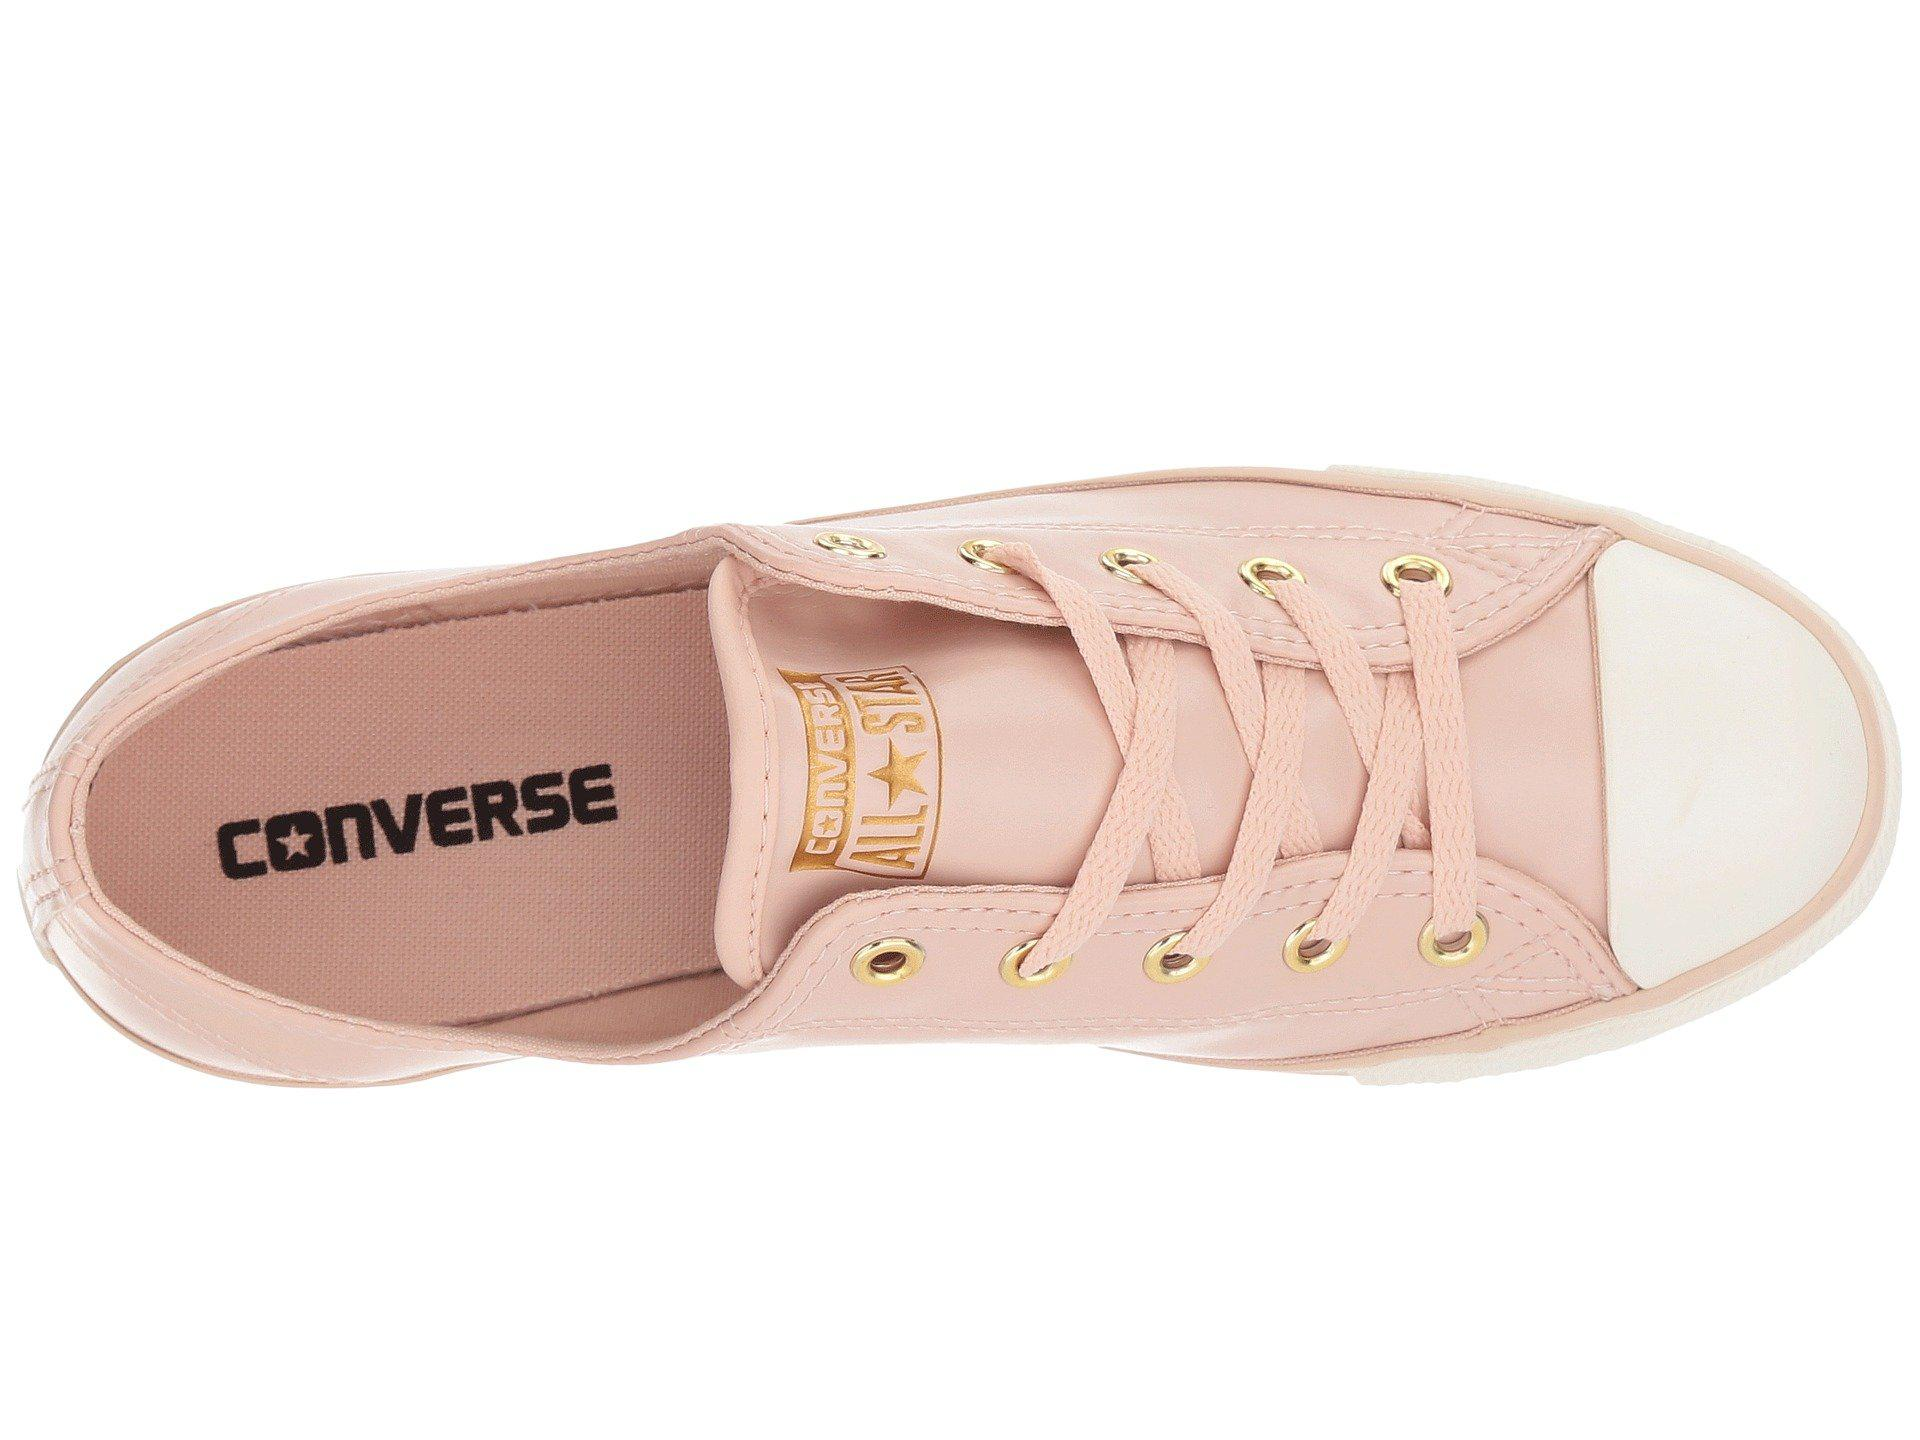 35d22c5aa83 Lyst - Converse Chuck Taylor All Star Dainty - Ox Craft Sl in Pink